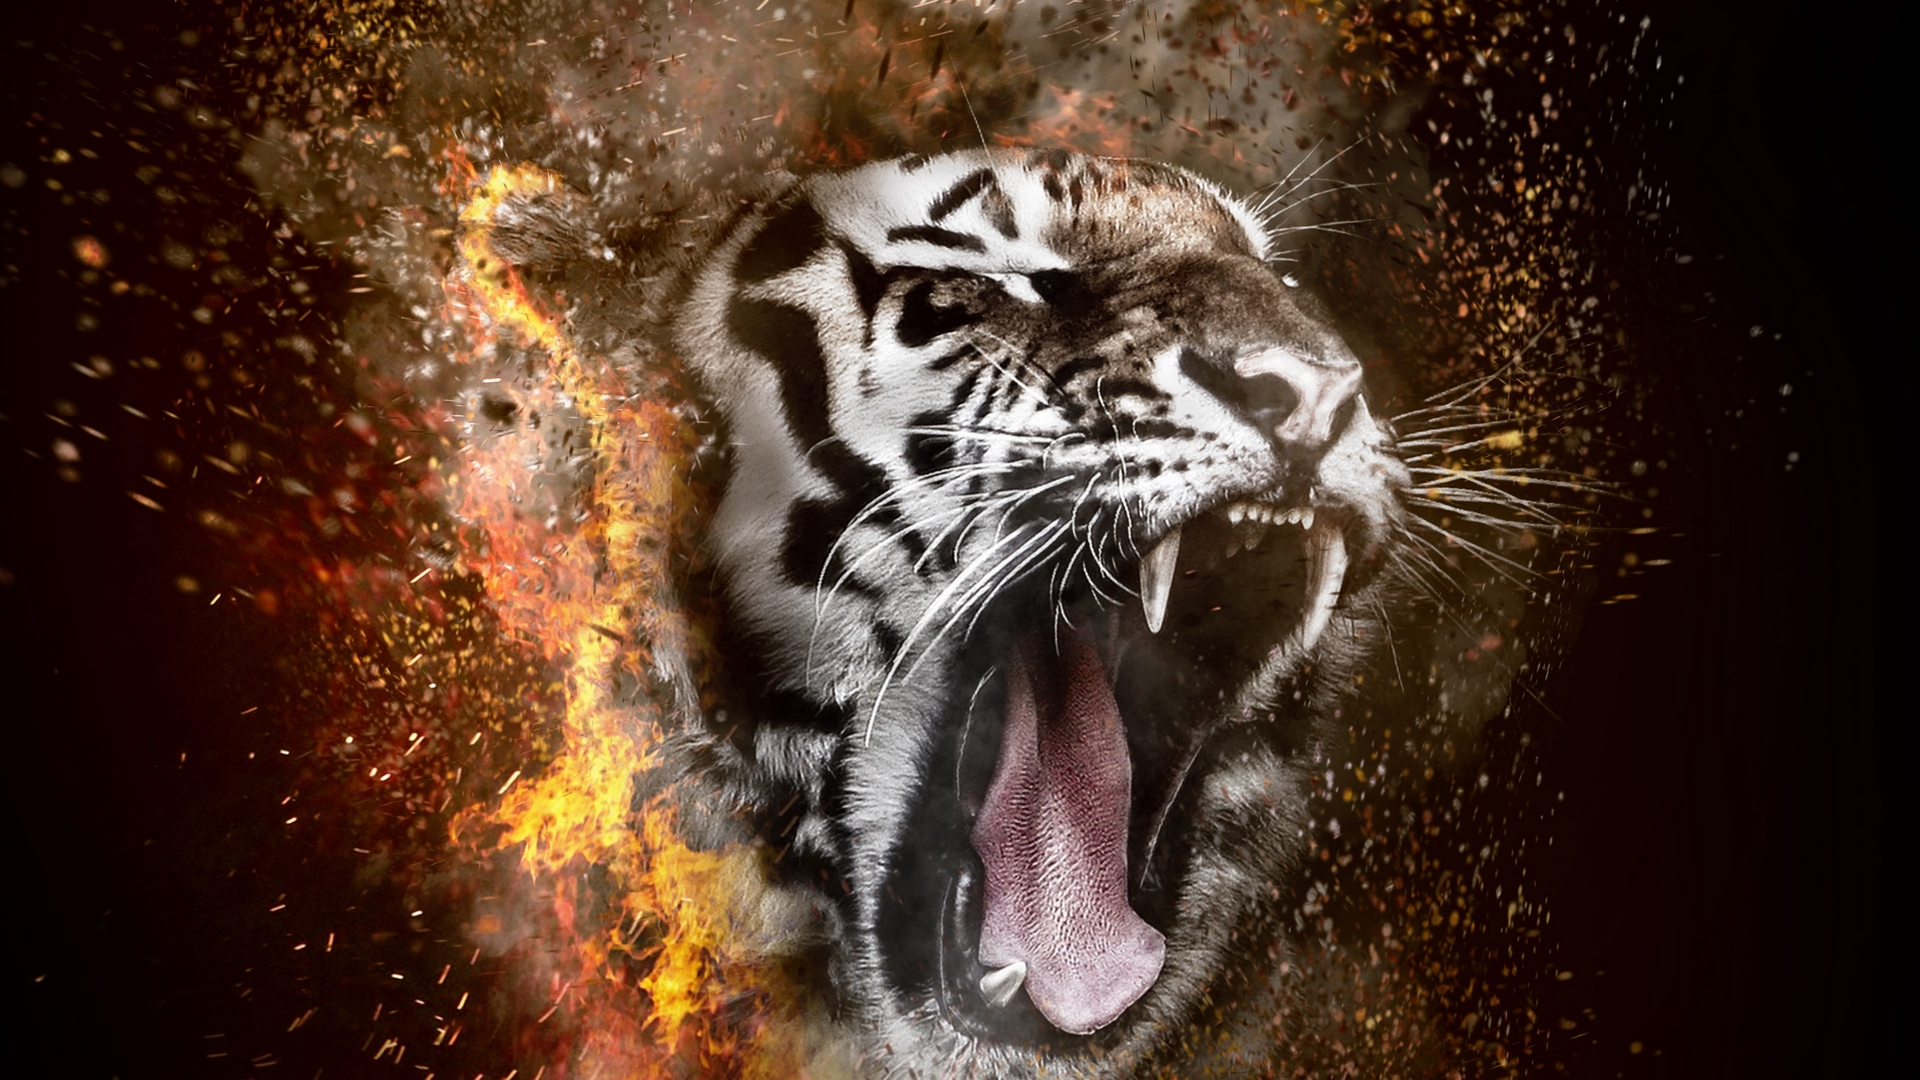 Tiger Wallpaper Hd 1080p Posted By Ethan Tremblay